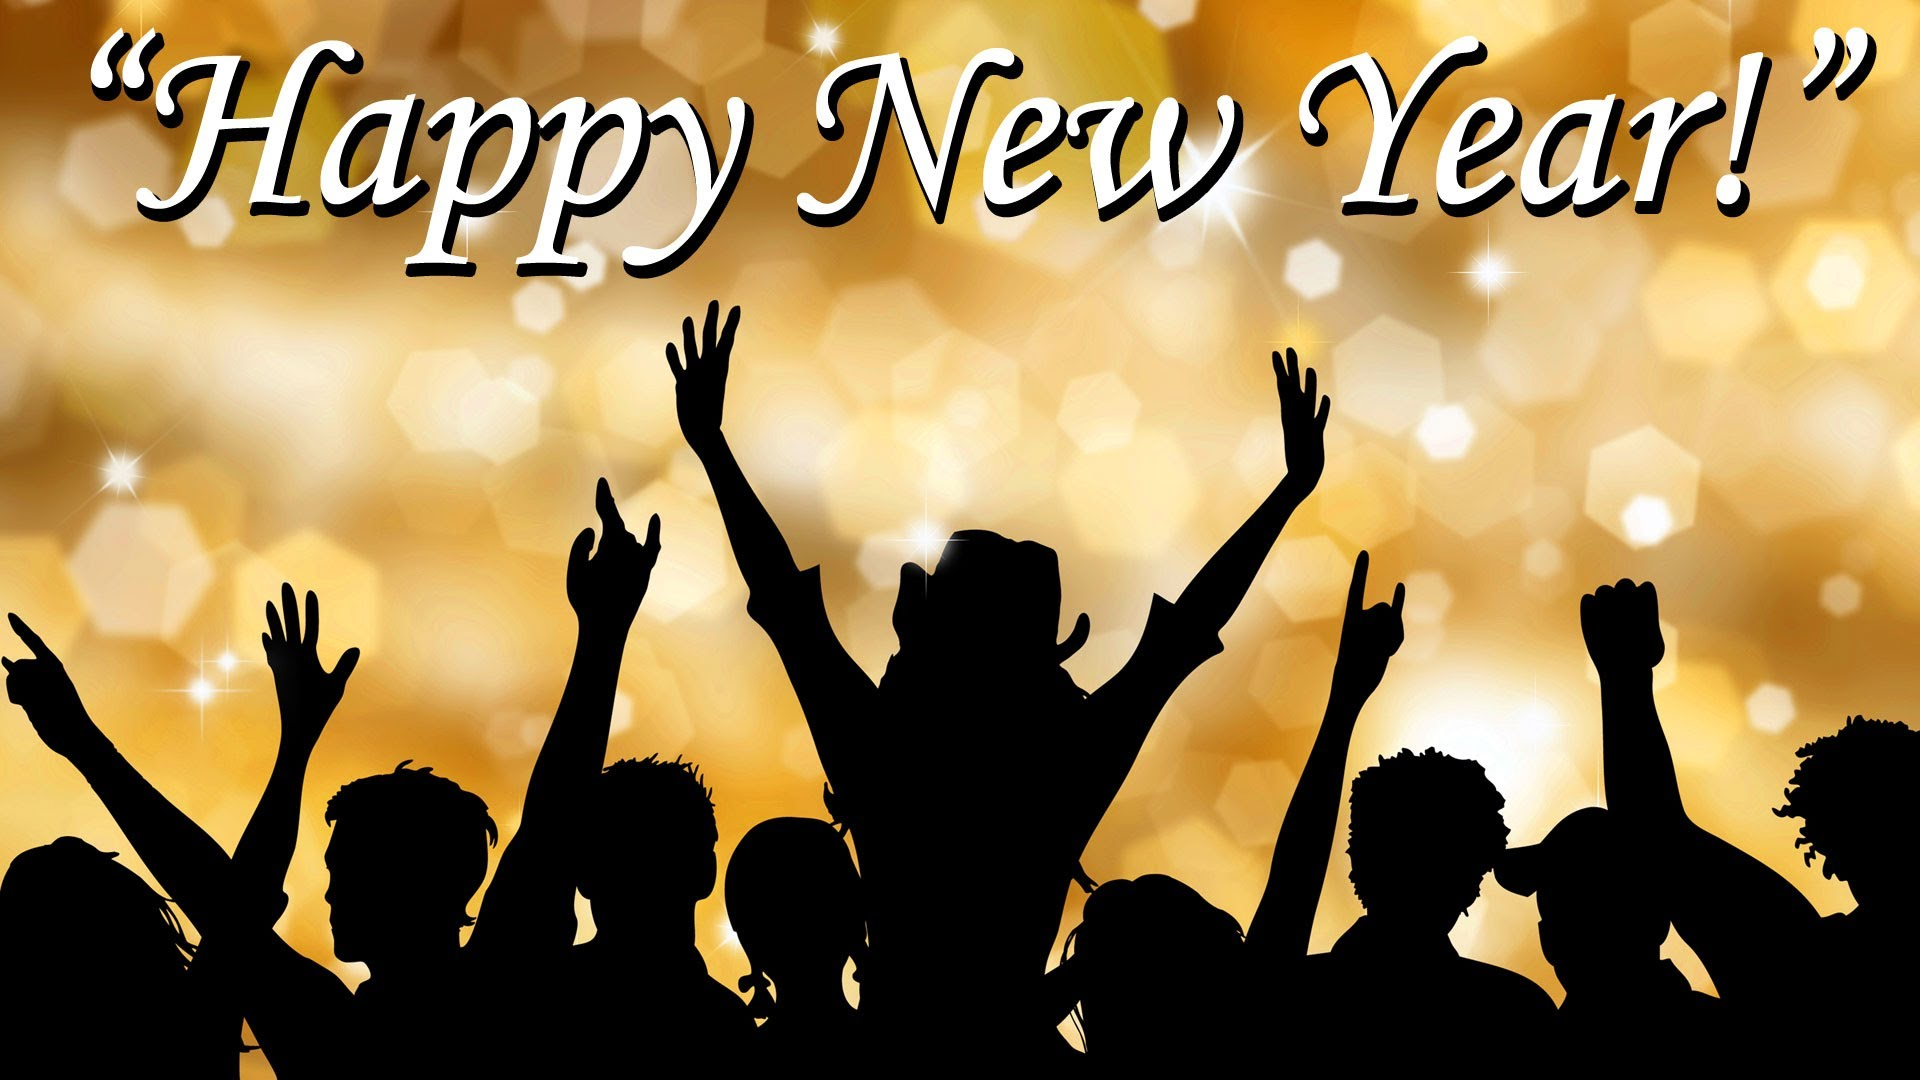 AULD LANG SYNE Lyrics New Year Song New years song